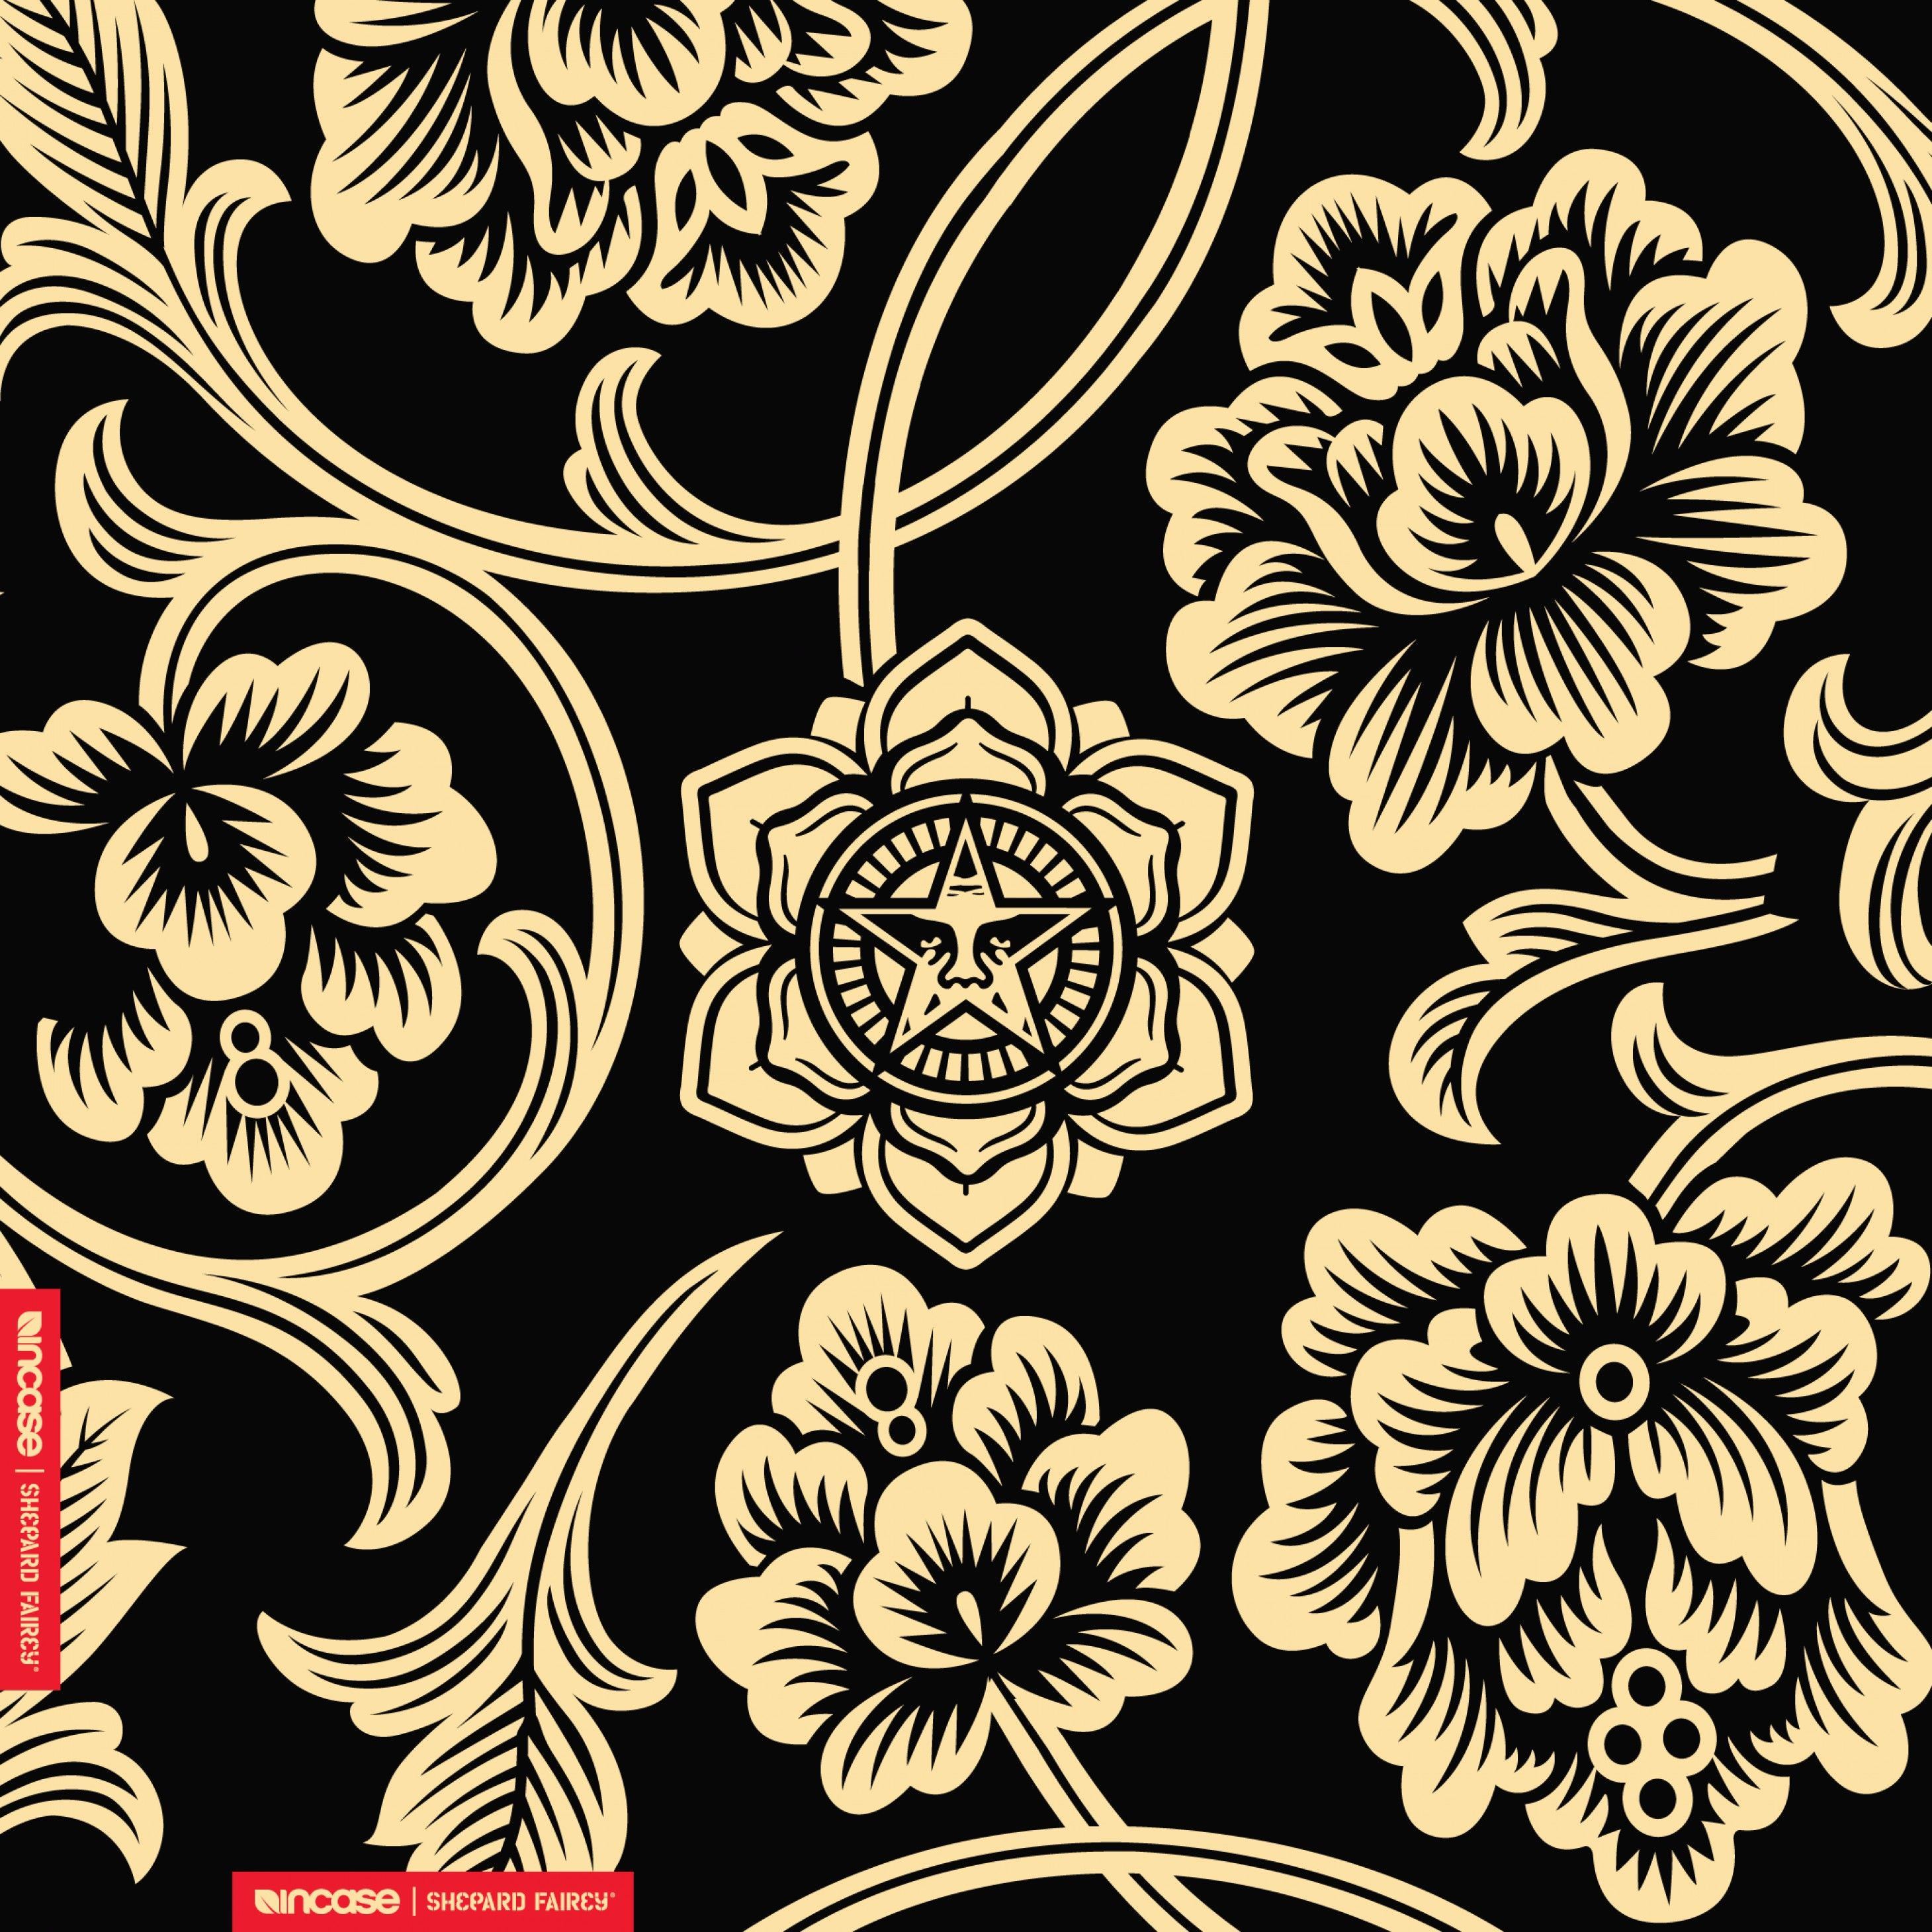 Obey Wallpaper Iphone 5 Iphone 5 Case Iphone 5 Iphone Cases